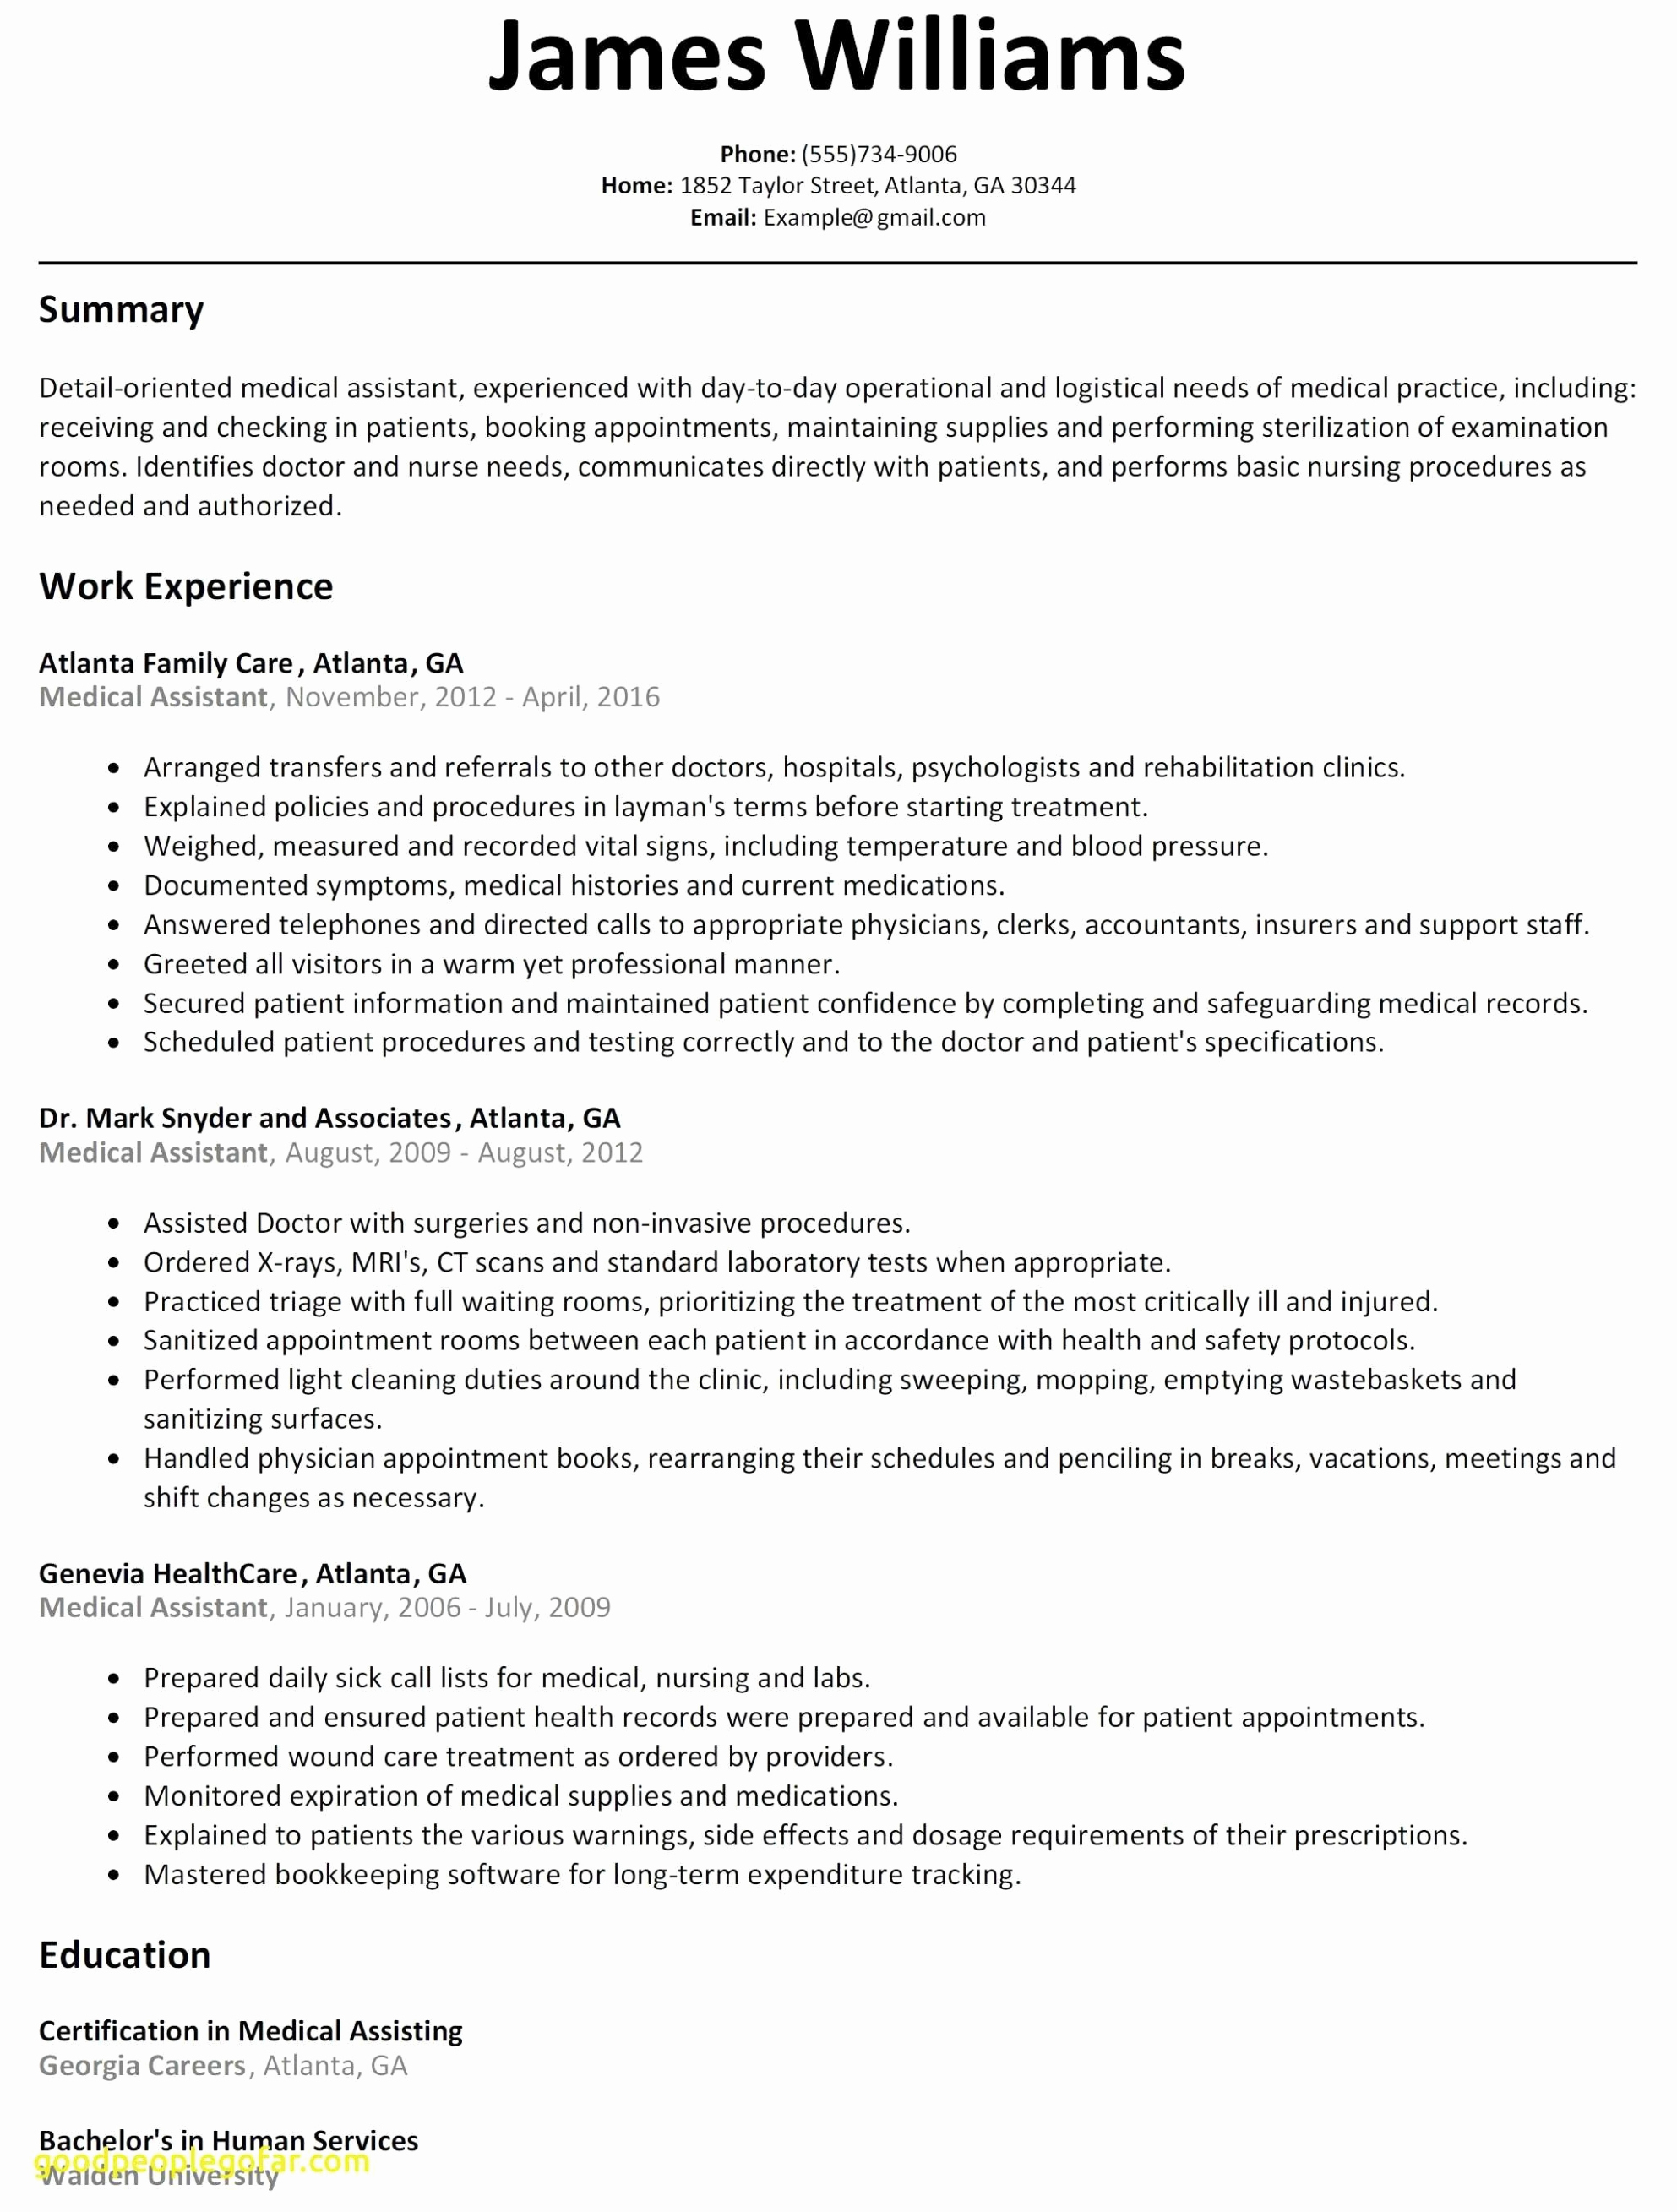 Resumes for Medical assistants with No Experience - Job Resumes with No Experience First Time Resume with No Experience